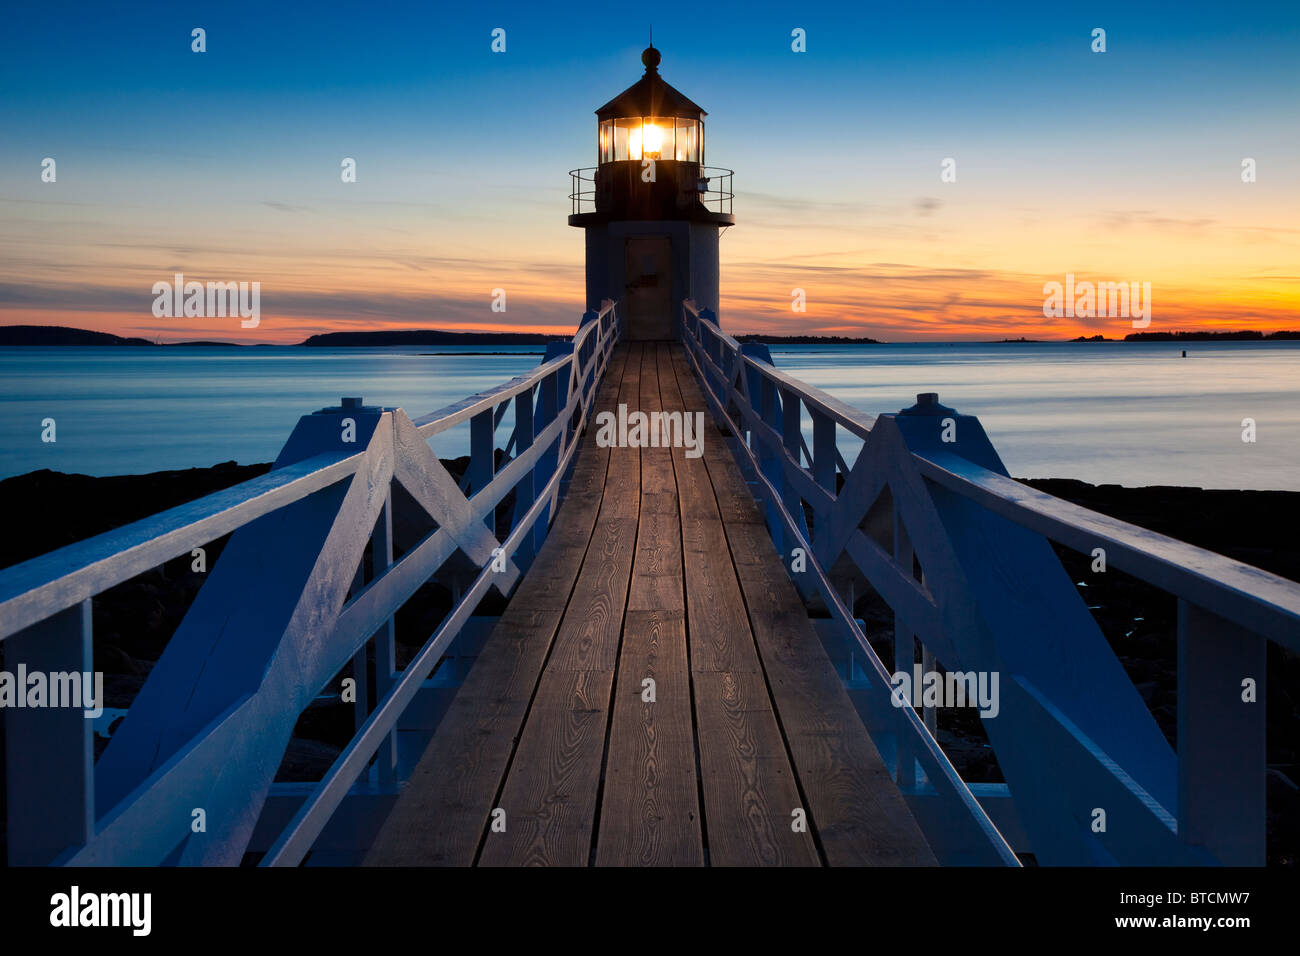 Sunset at Marshall Point Lighthouse - built 1832, near Port Clyde Maine USA - Stock Image